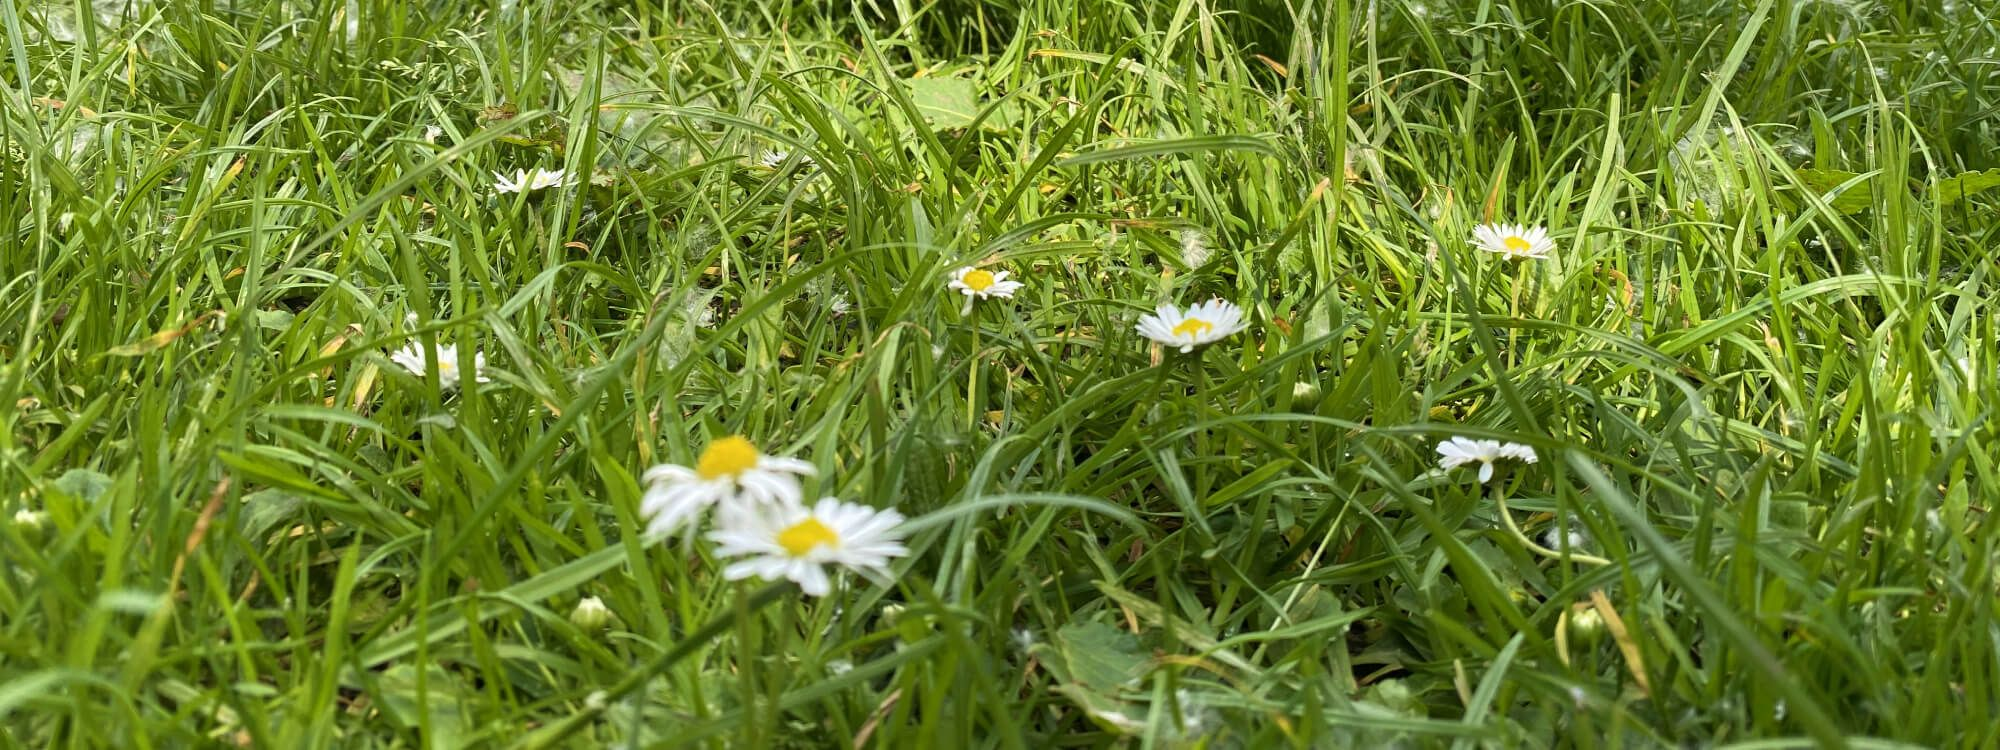 Several daisies against green grass in Meanwood Park